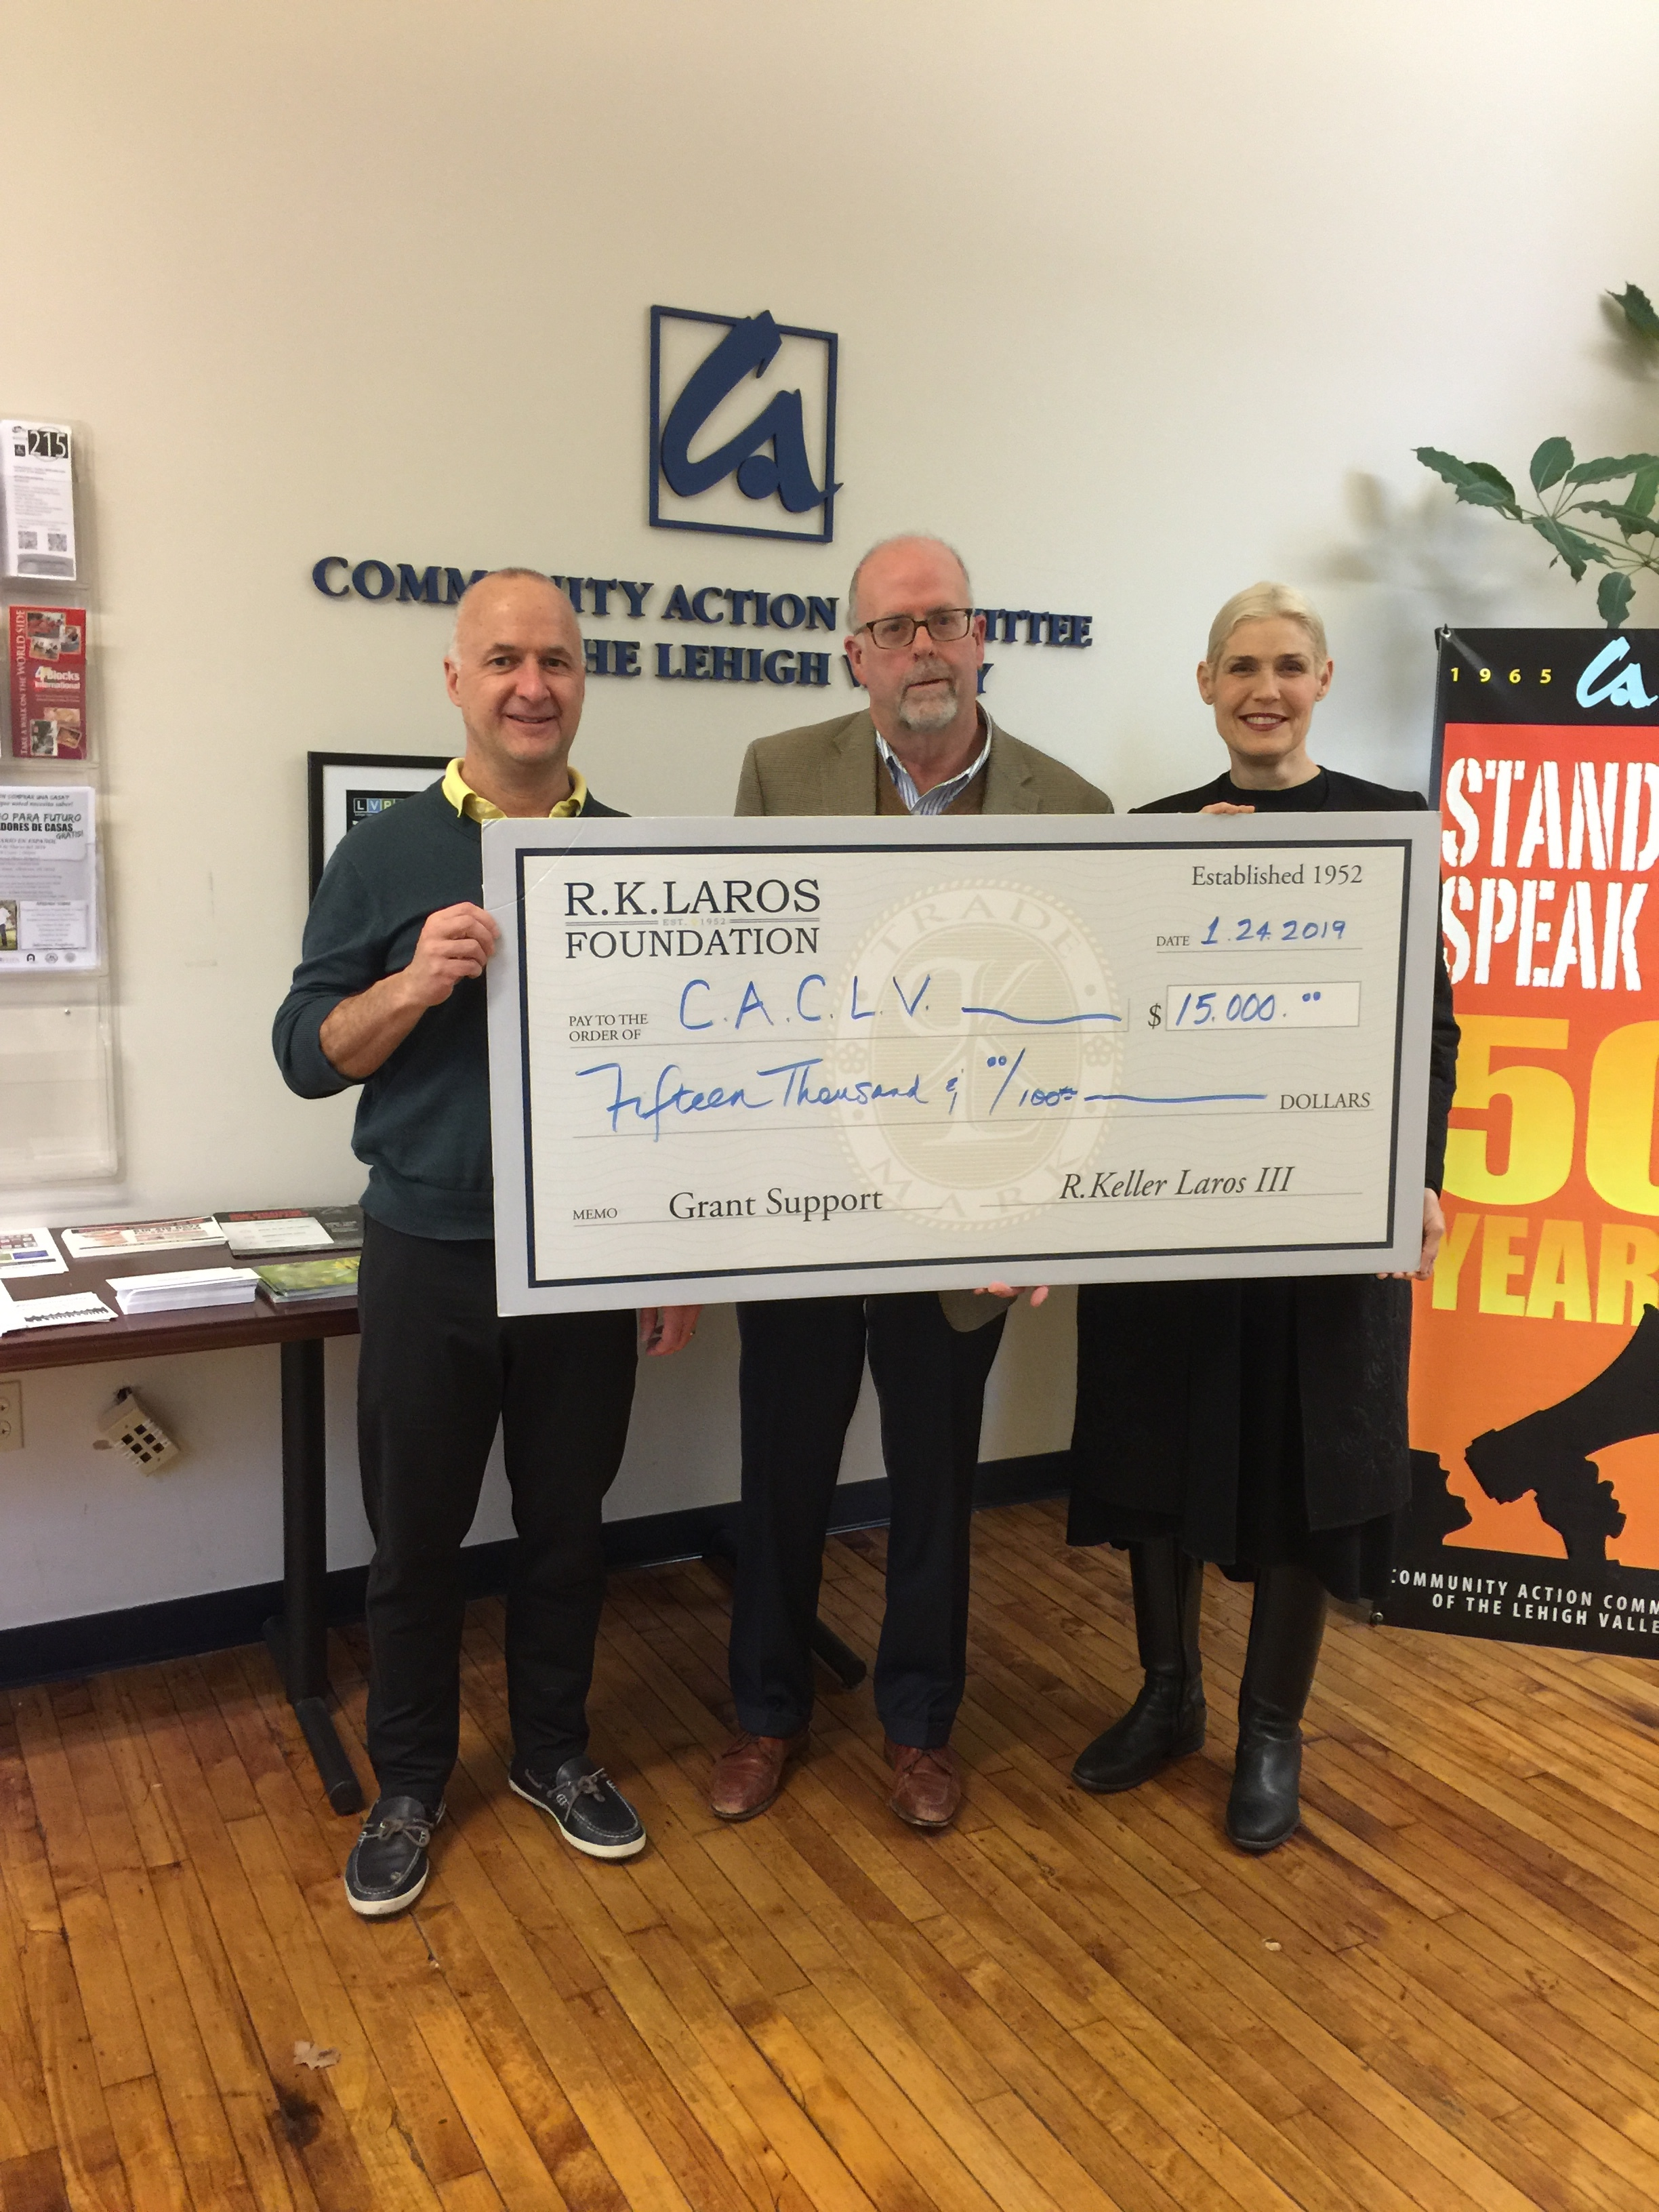 Trustee George Mowrer and Vice Chair Laura Bennett Shelton on 1.24.19 present the grant to CACLV Executive Director Alan Jennings to support outside repairs to the Forte Building.